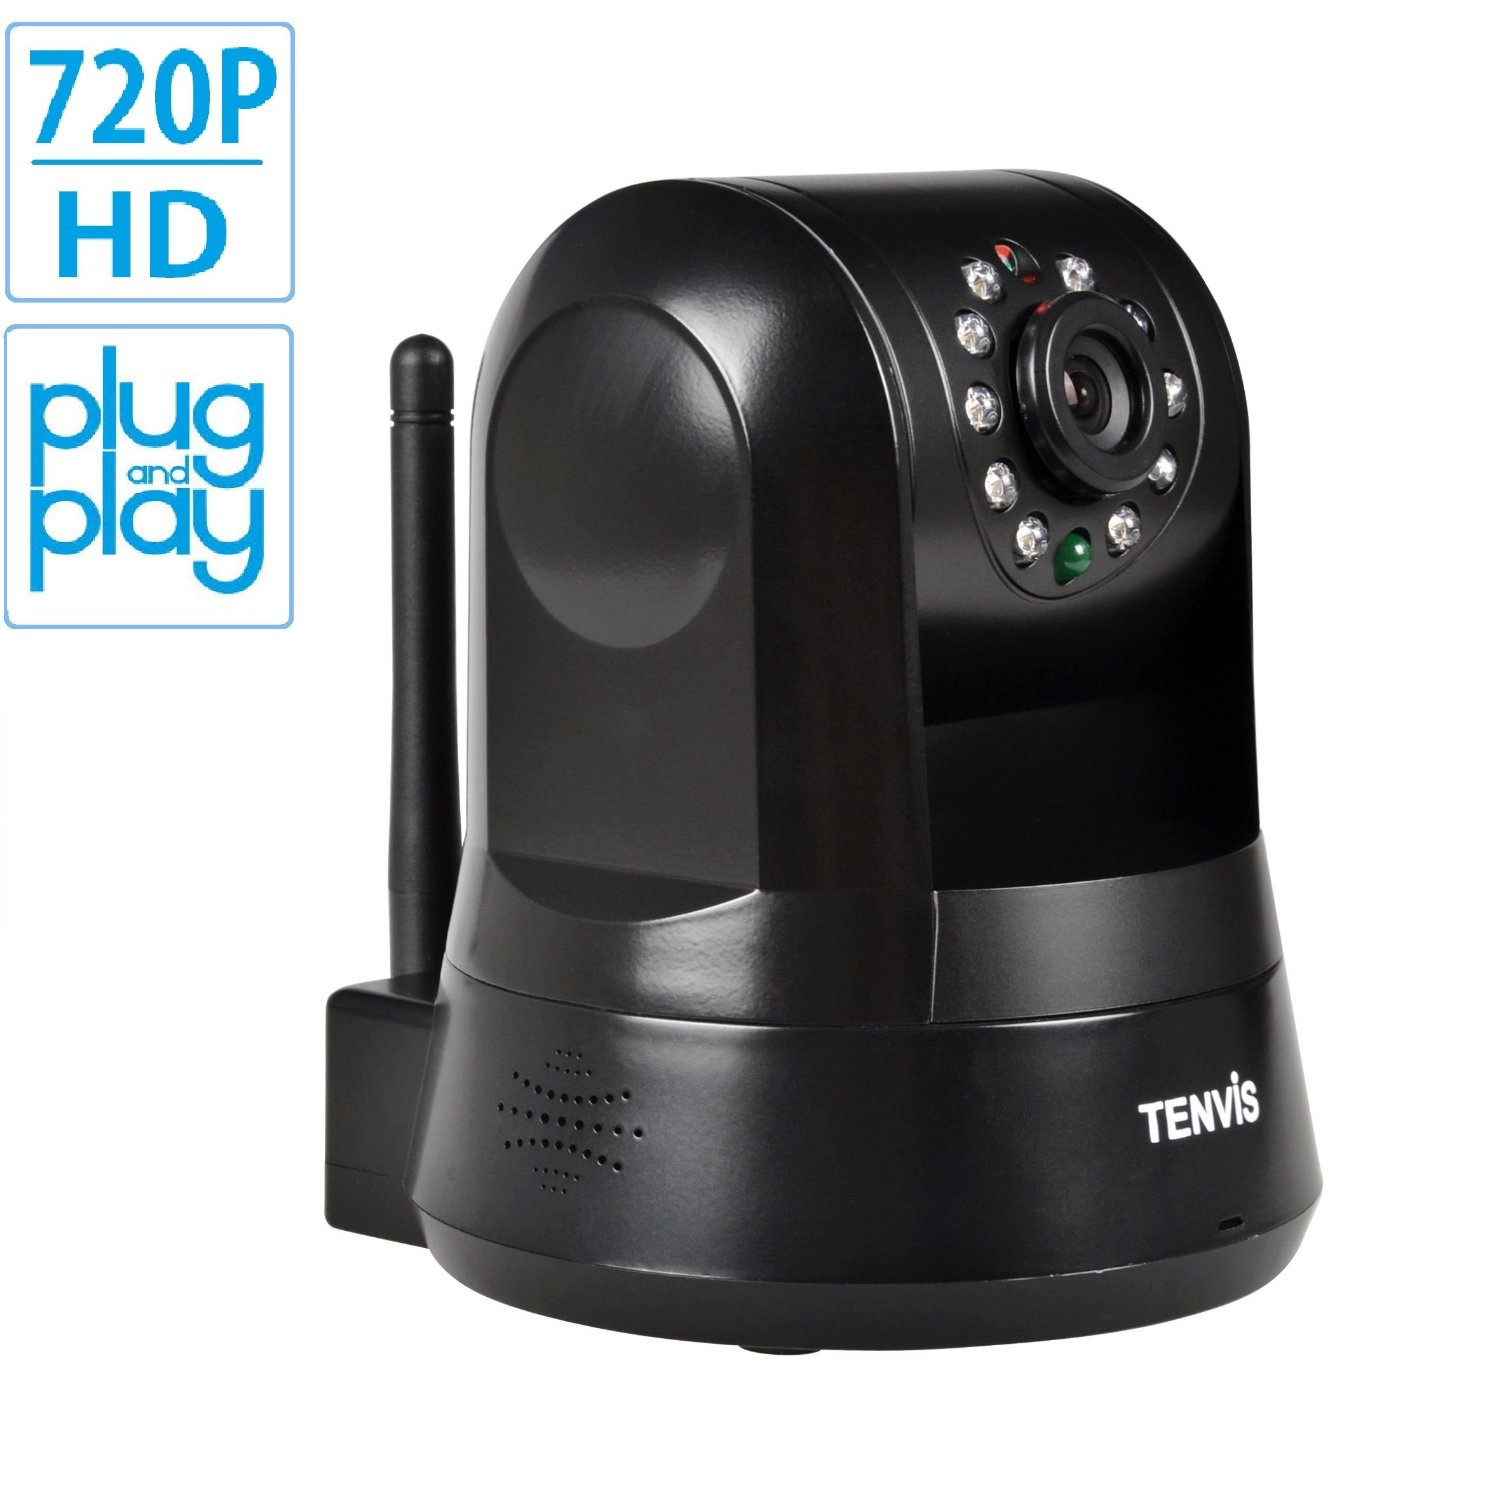 Tenvis WiFi Security Systems